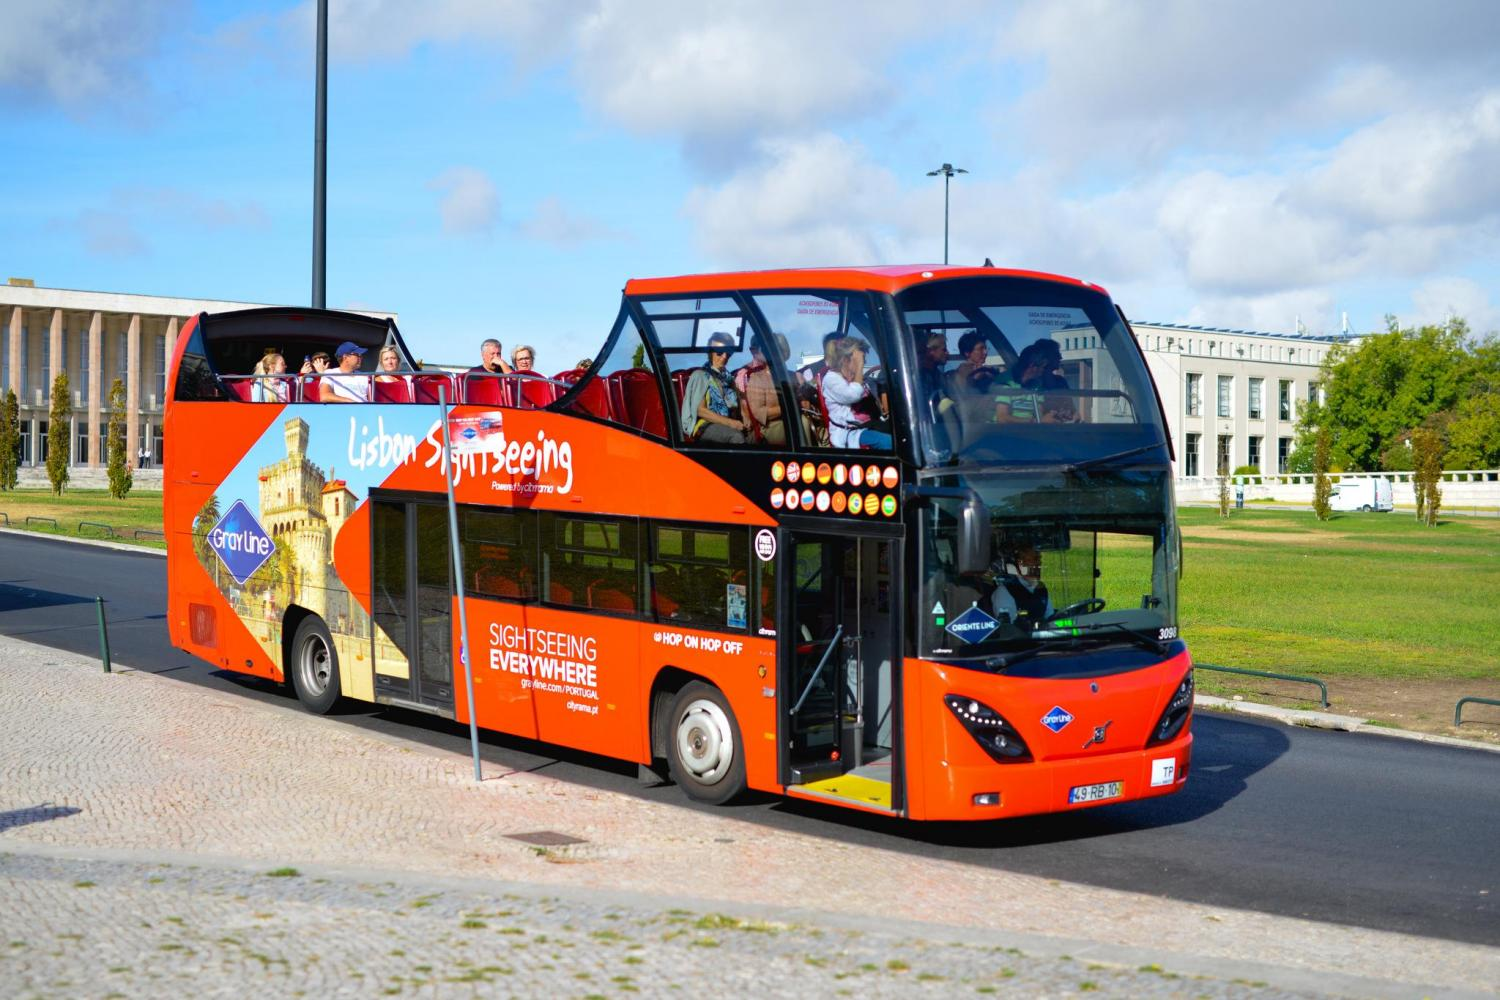 Lisbon Sightseeing Hop On Hop Off - All 4 Lines for Two Days - Belém,Oriente,Castle & Cascais Lines